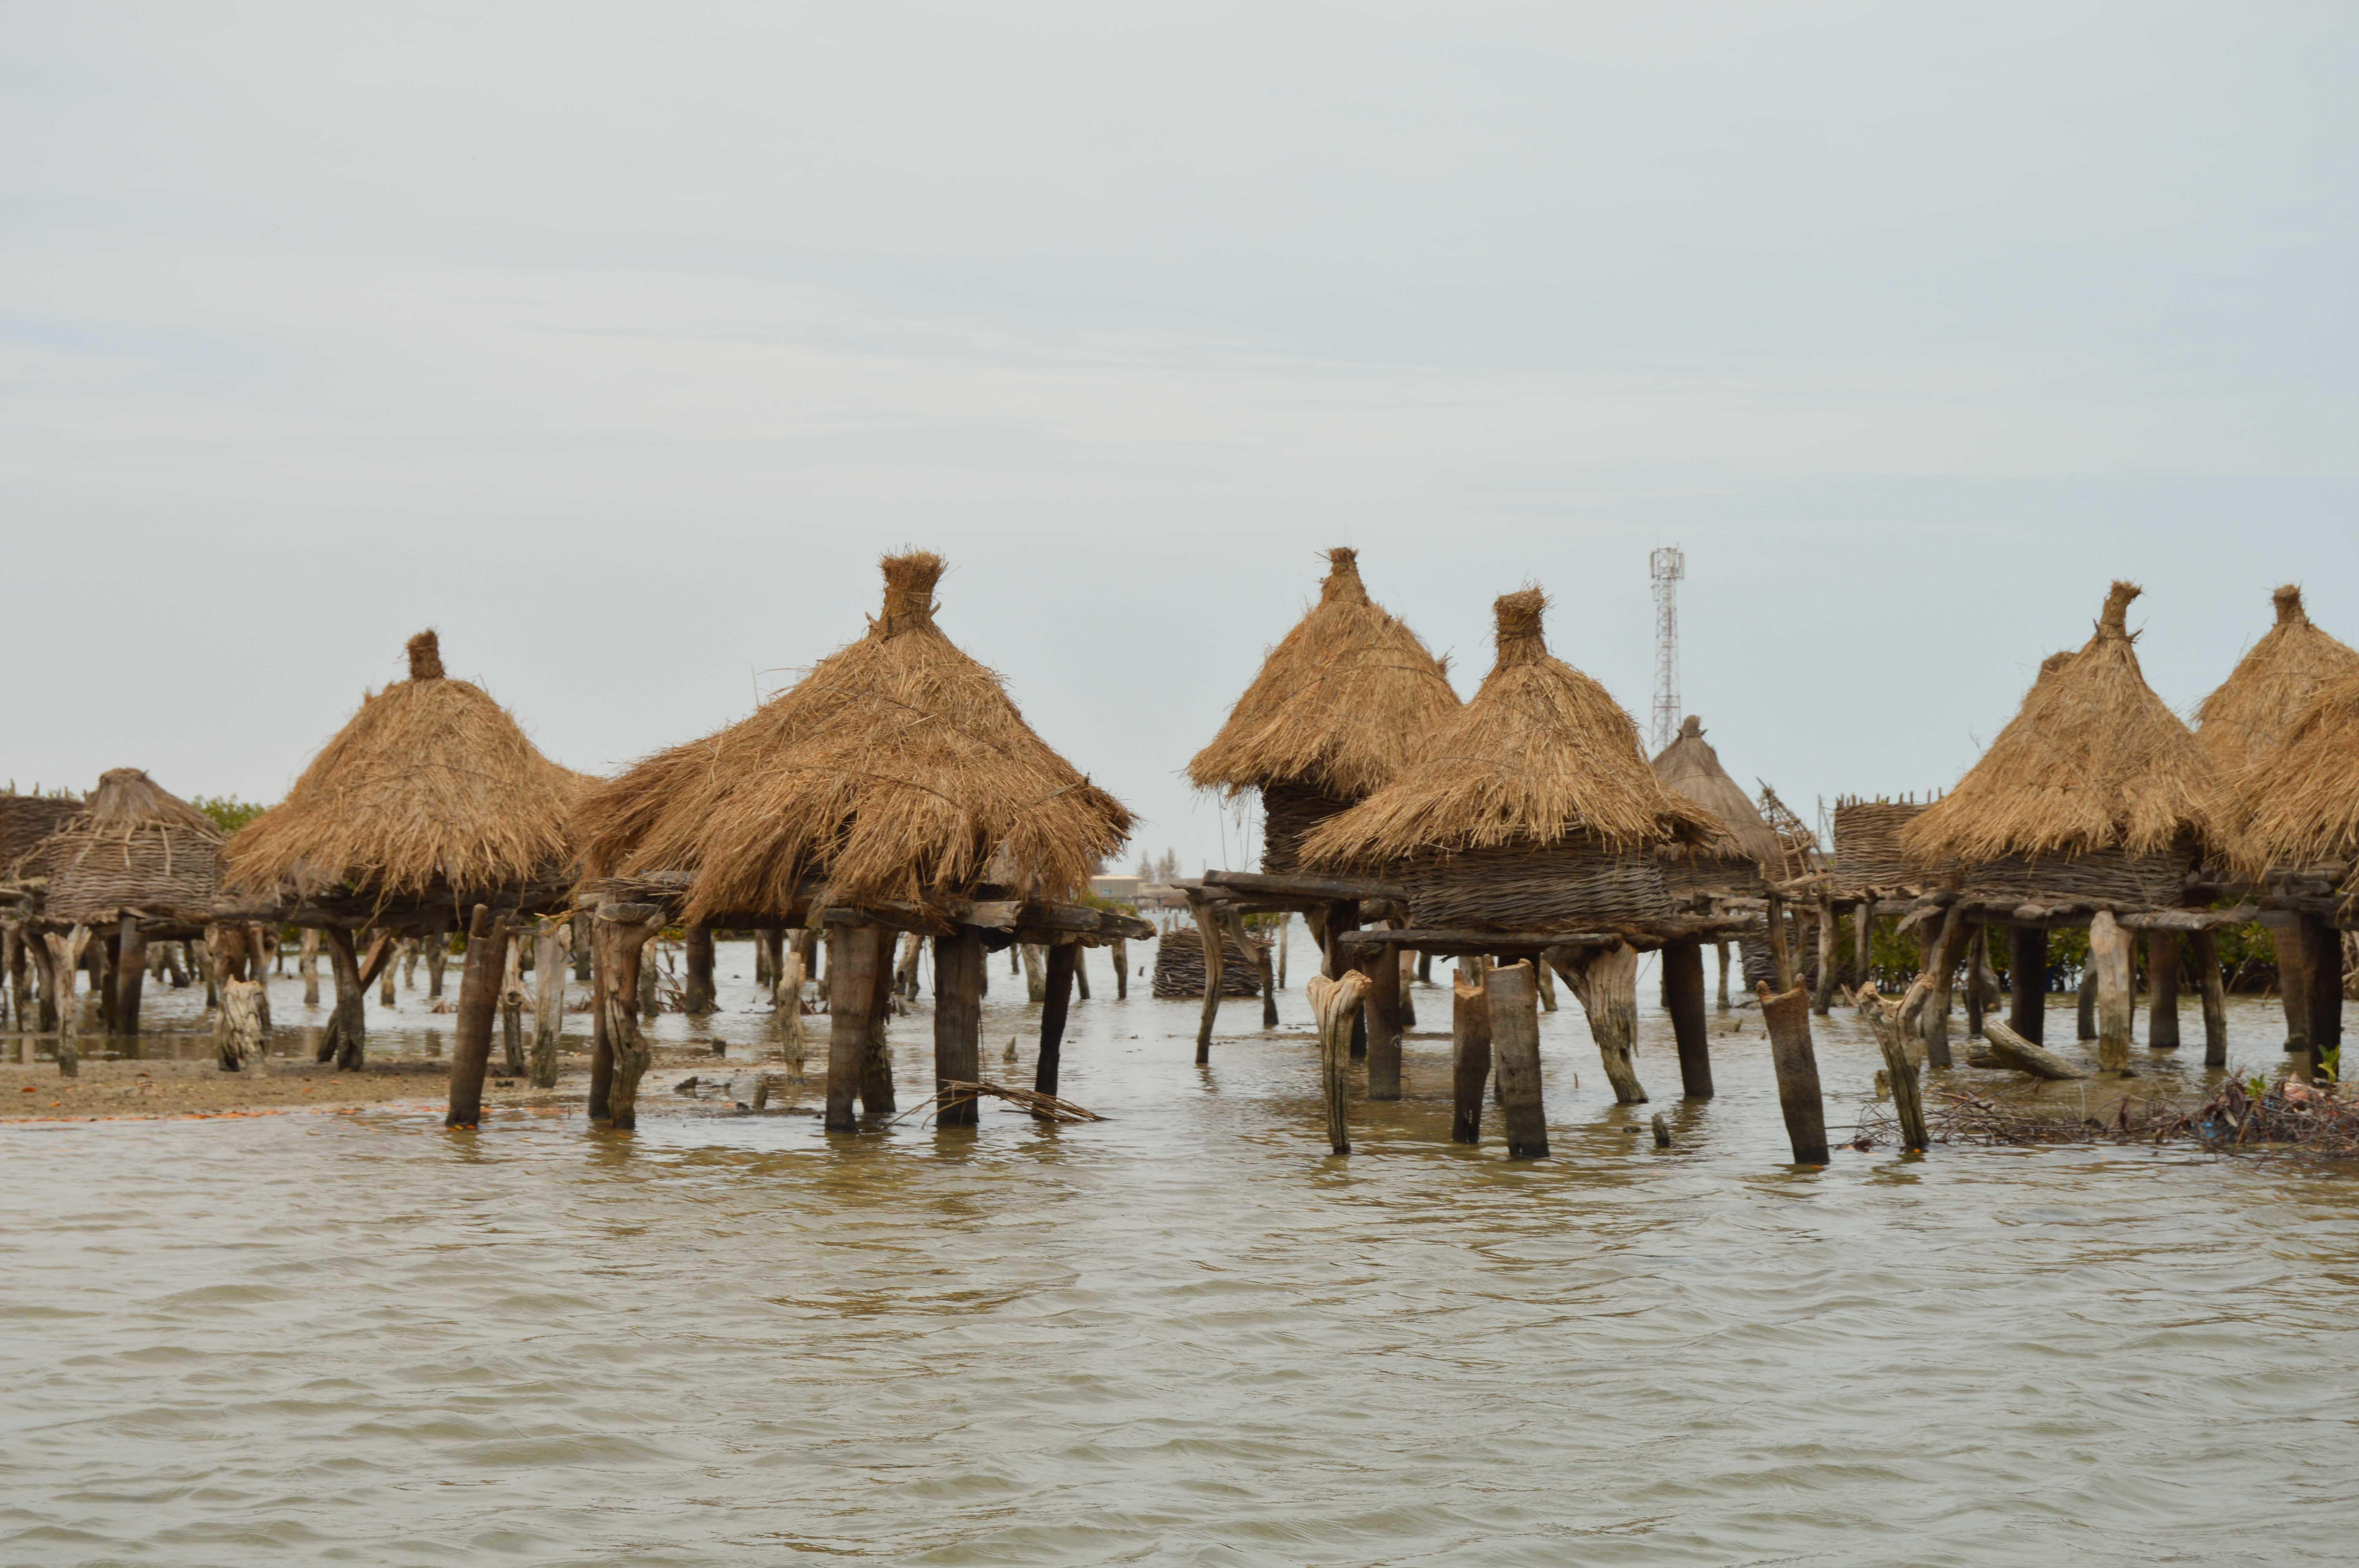 On weekends and in free time, you can see sights such as traditional granaries in Senegal.